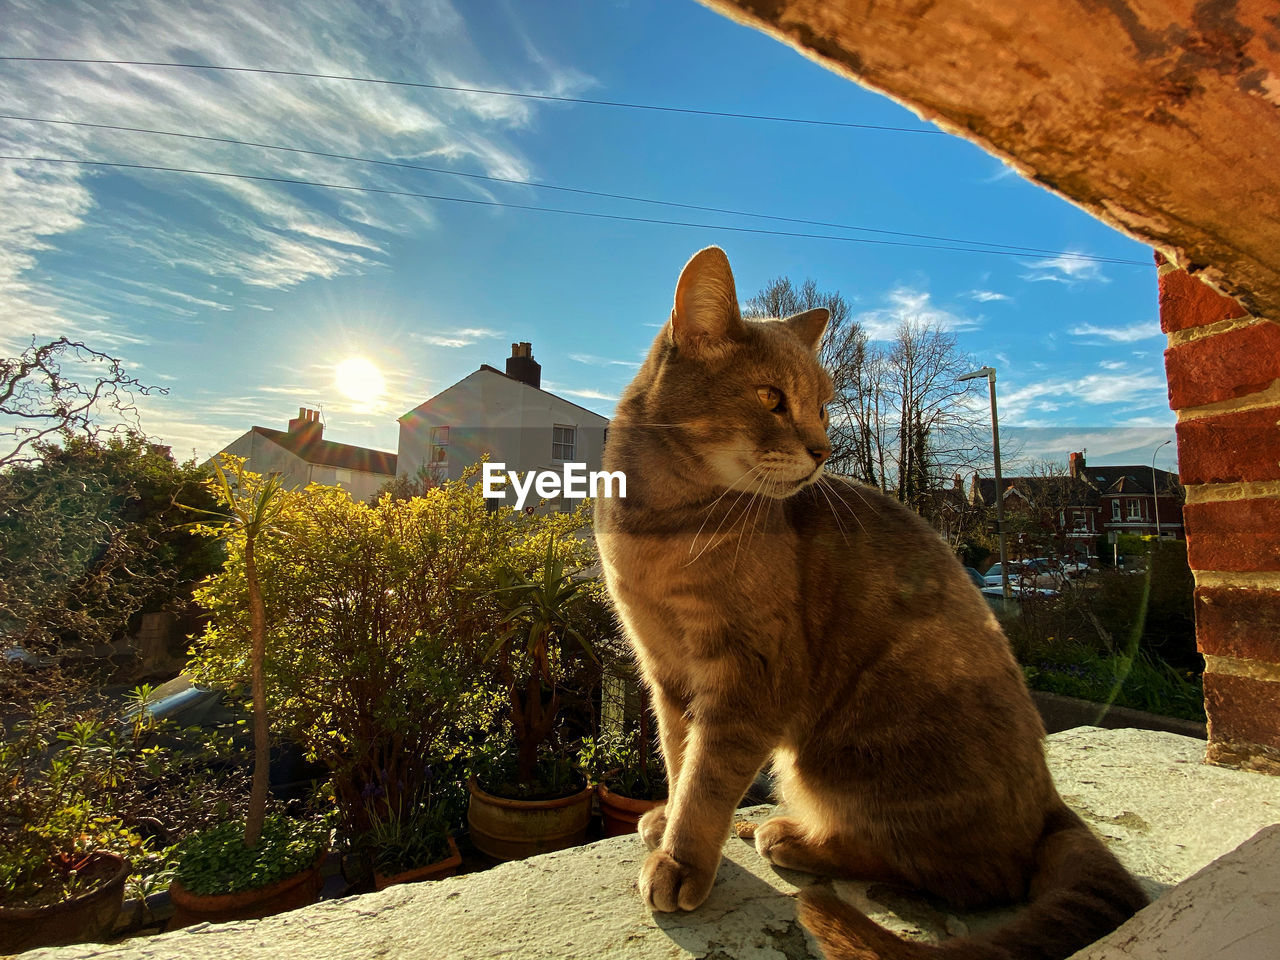 VIEW OF A CAT LOOKING AT VIEW